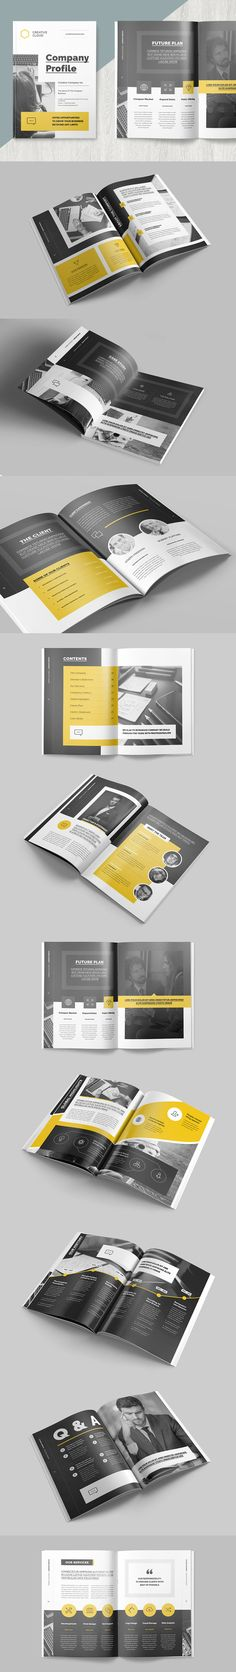 Company Profile 16 Pages Template INDD Company Profile Brochure - it company profile template